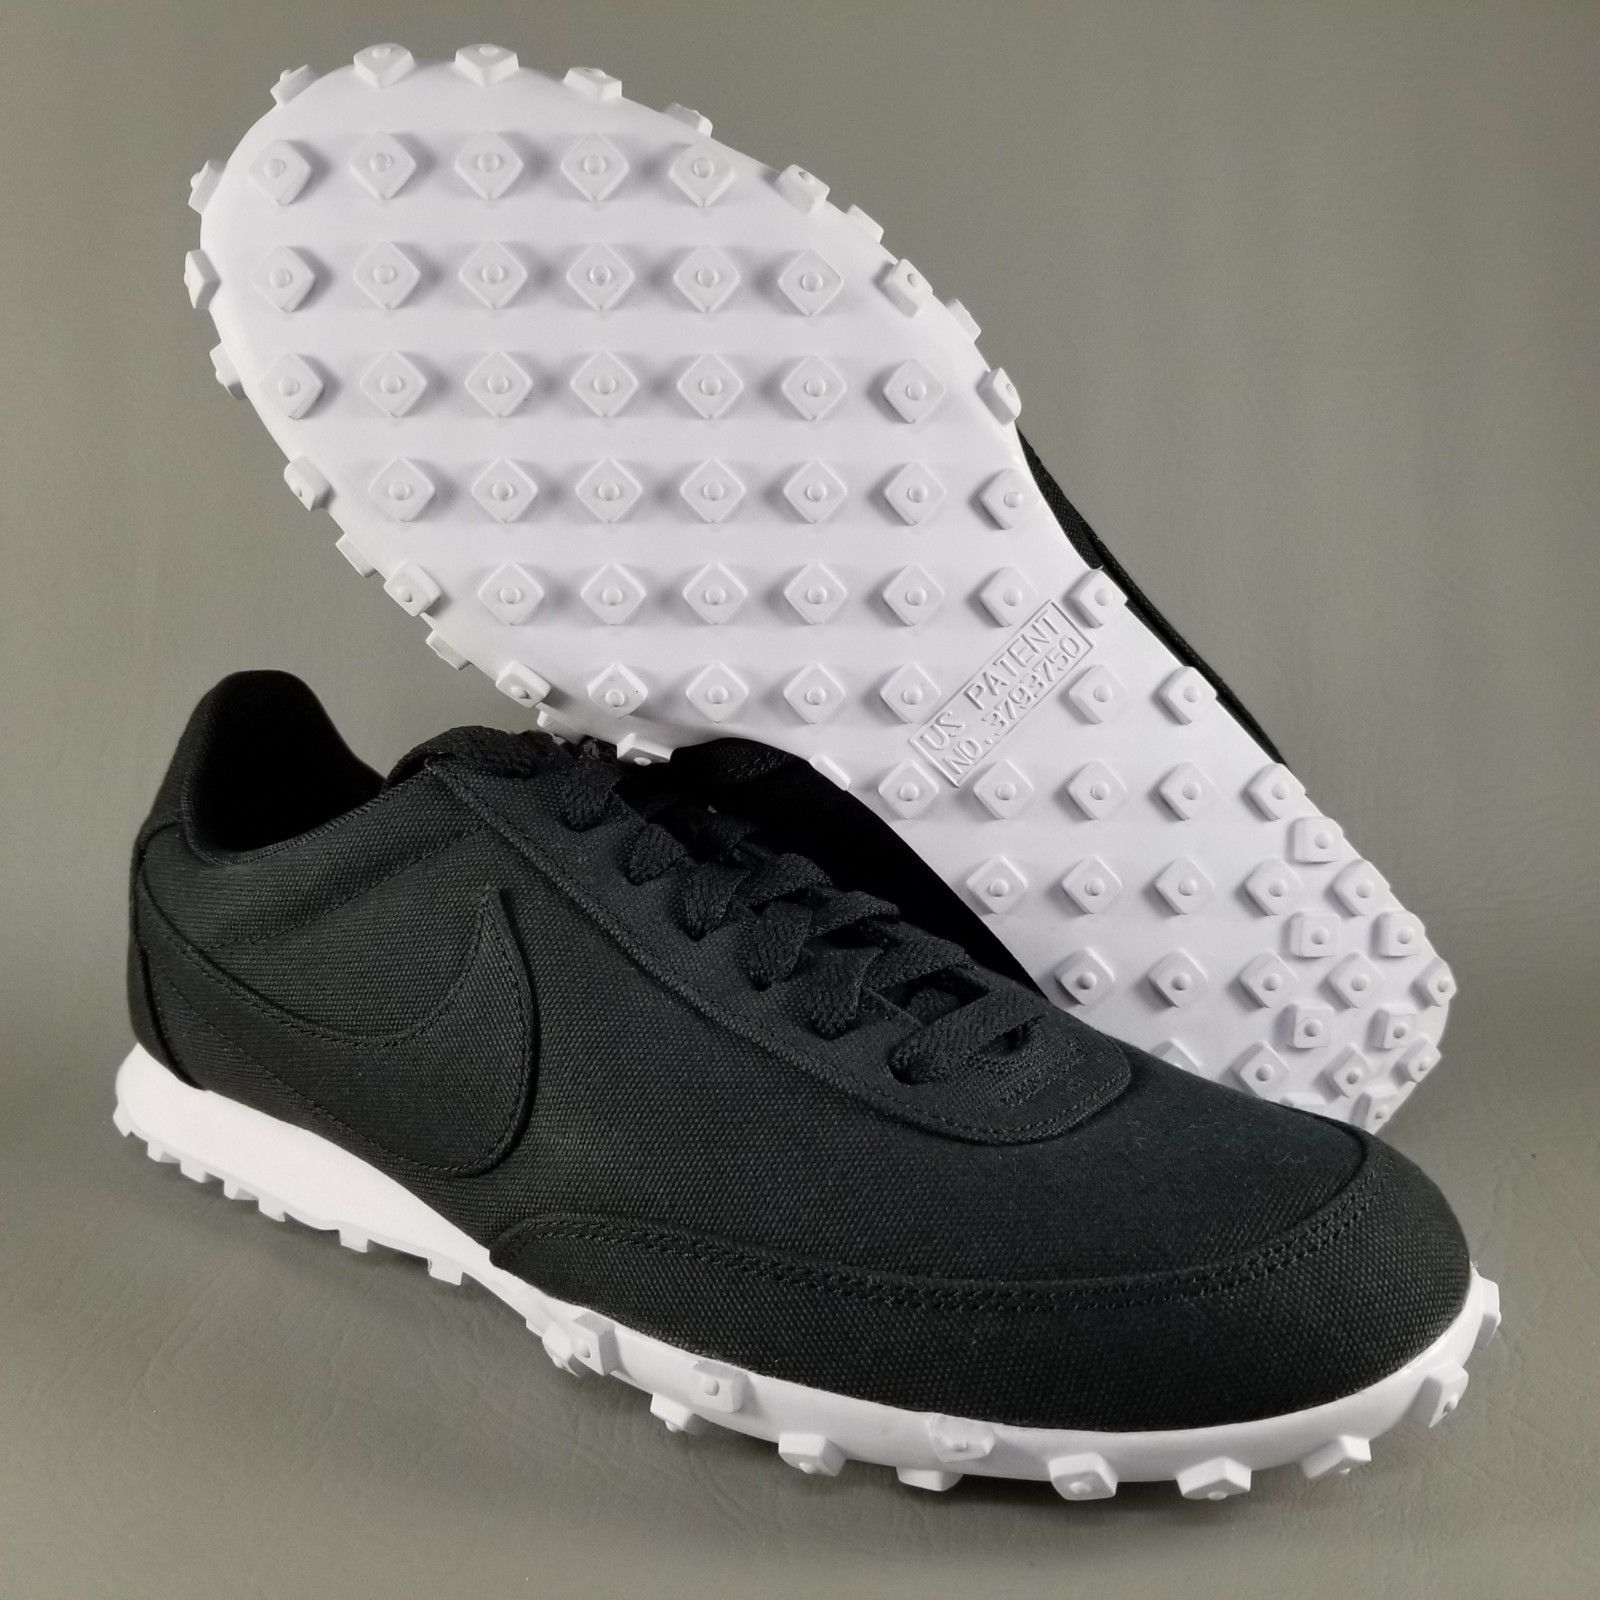 0274420babc ... Nike Waffle Racer 17 Textile Men s Size 10 Athletic Running Sneakers  Shoes Black ...